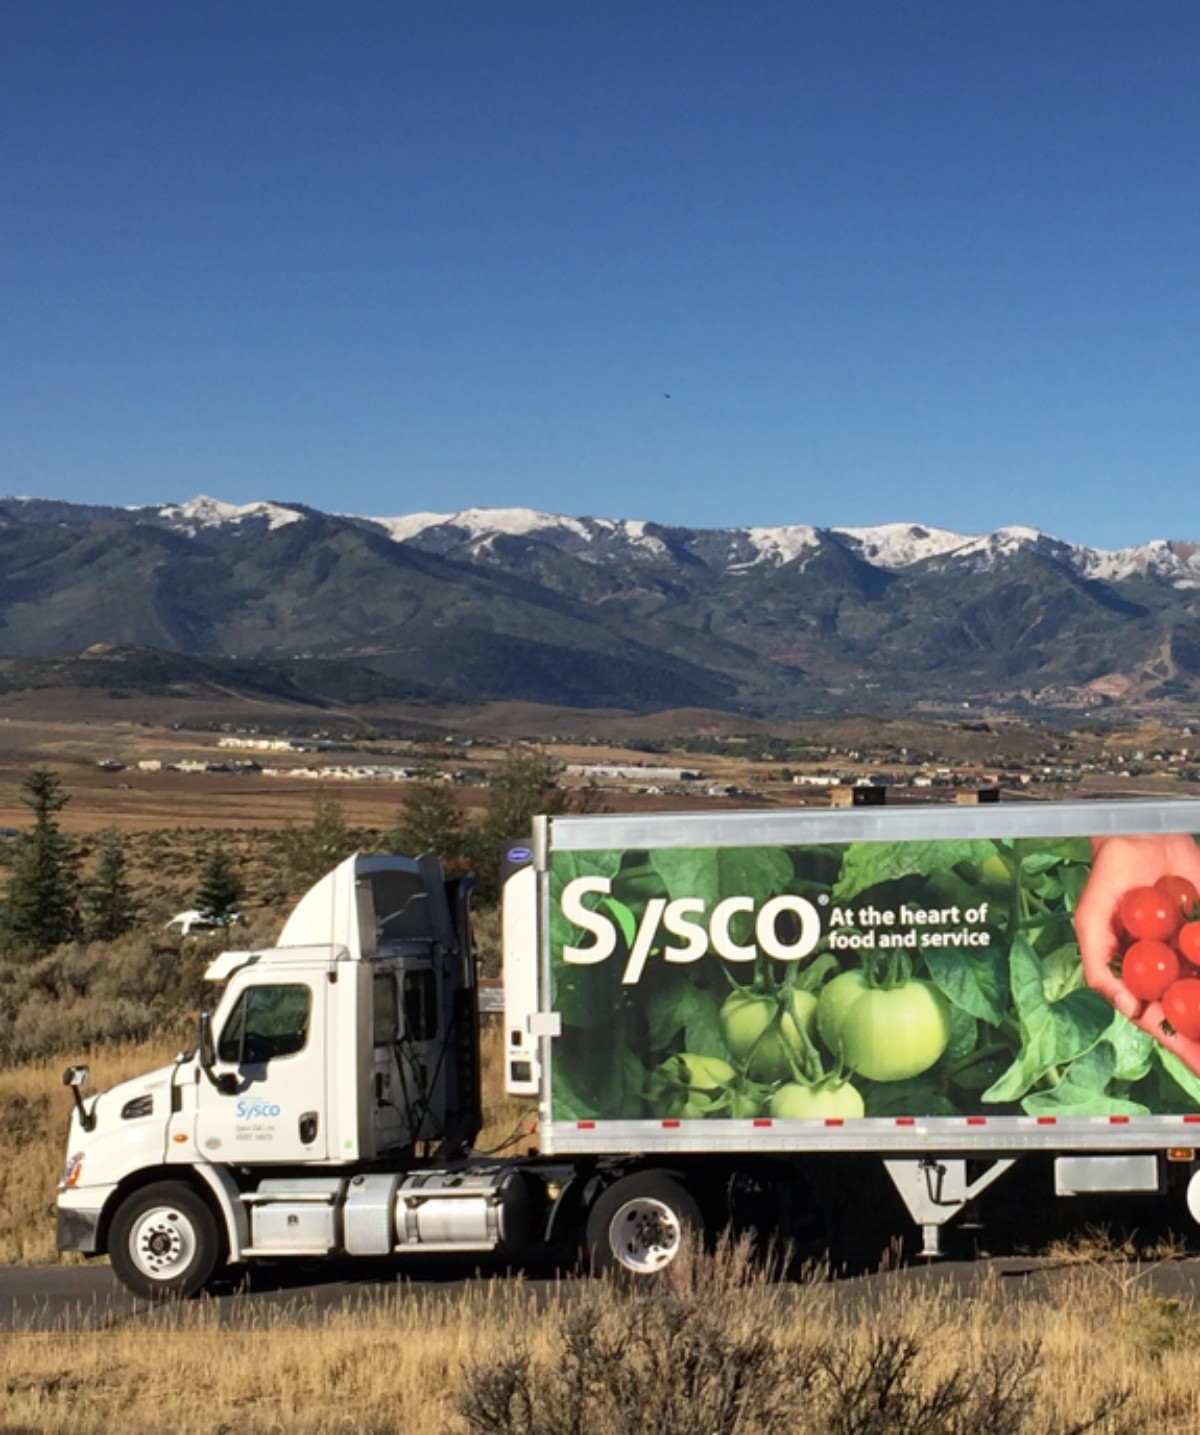 Sysco truck in front of mountains